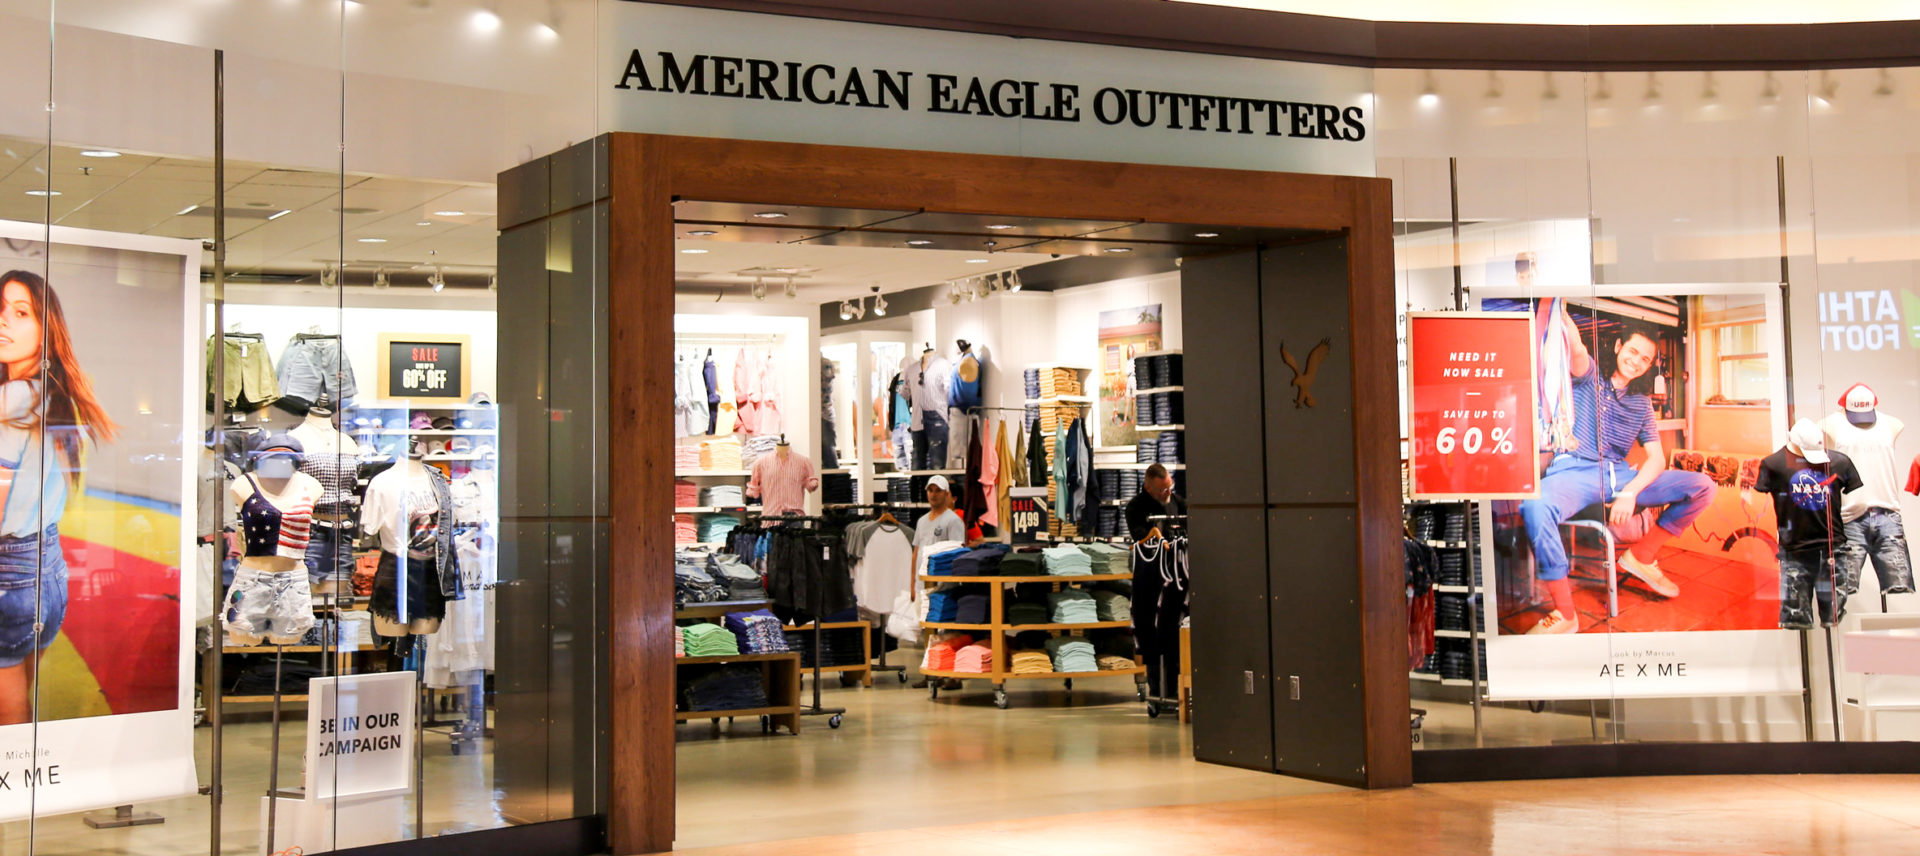 American Eagle expects brighter sales this holiday season